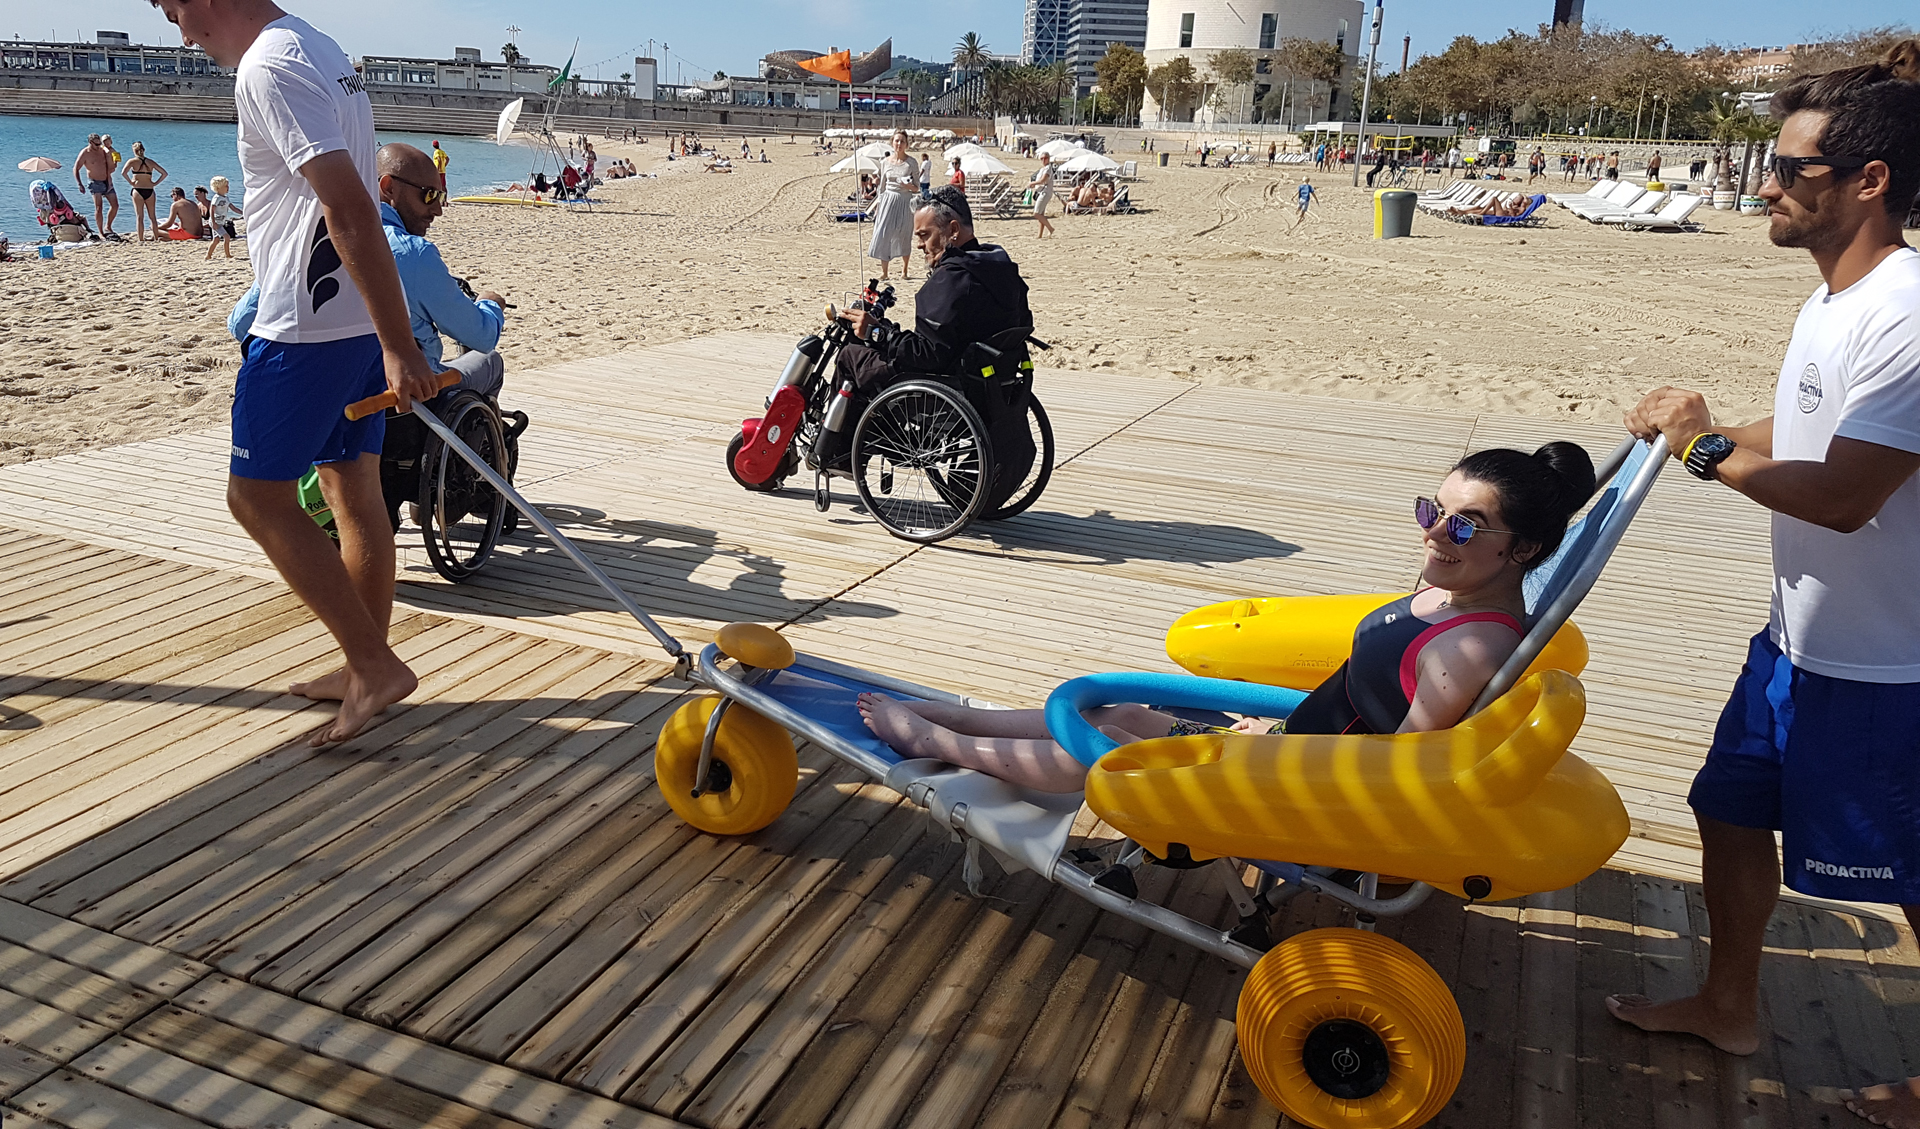 accessible-travel-guide-to-barcelona-beach-amphibious-wheelchairs-Nova -icària-beach-barcelona